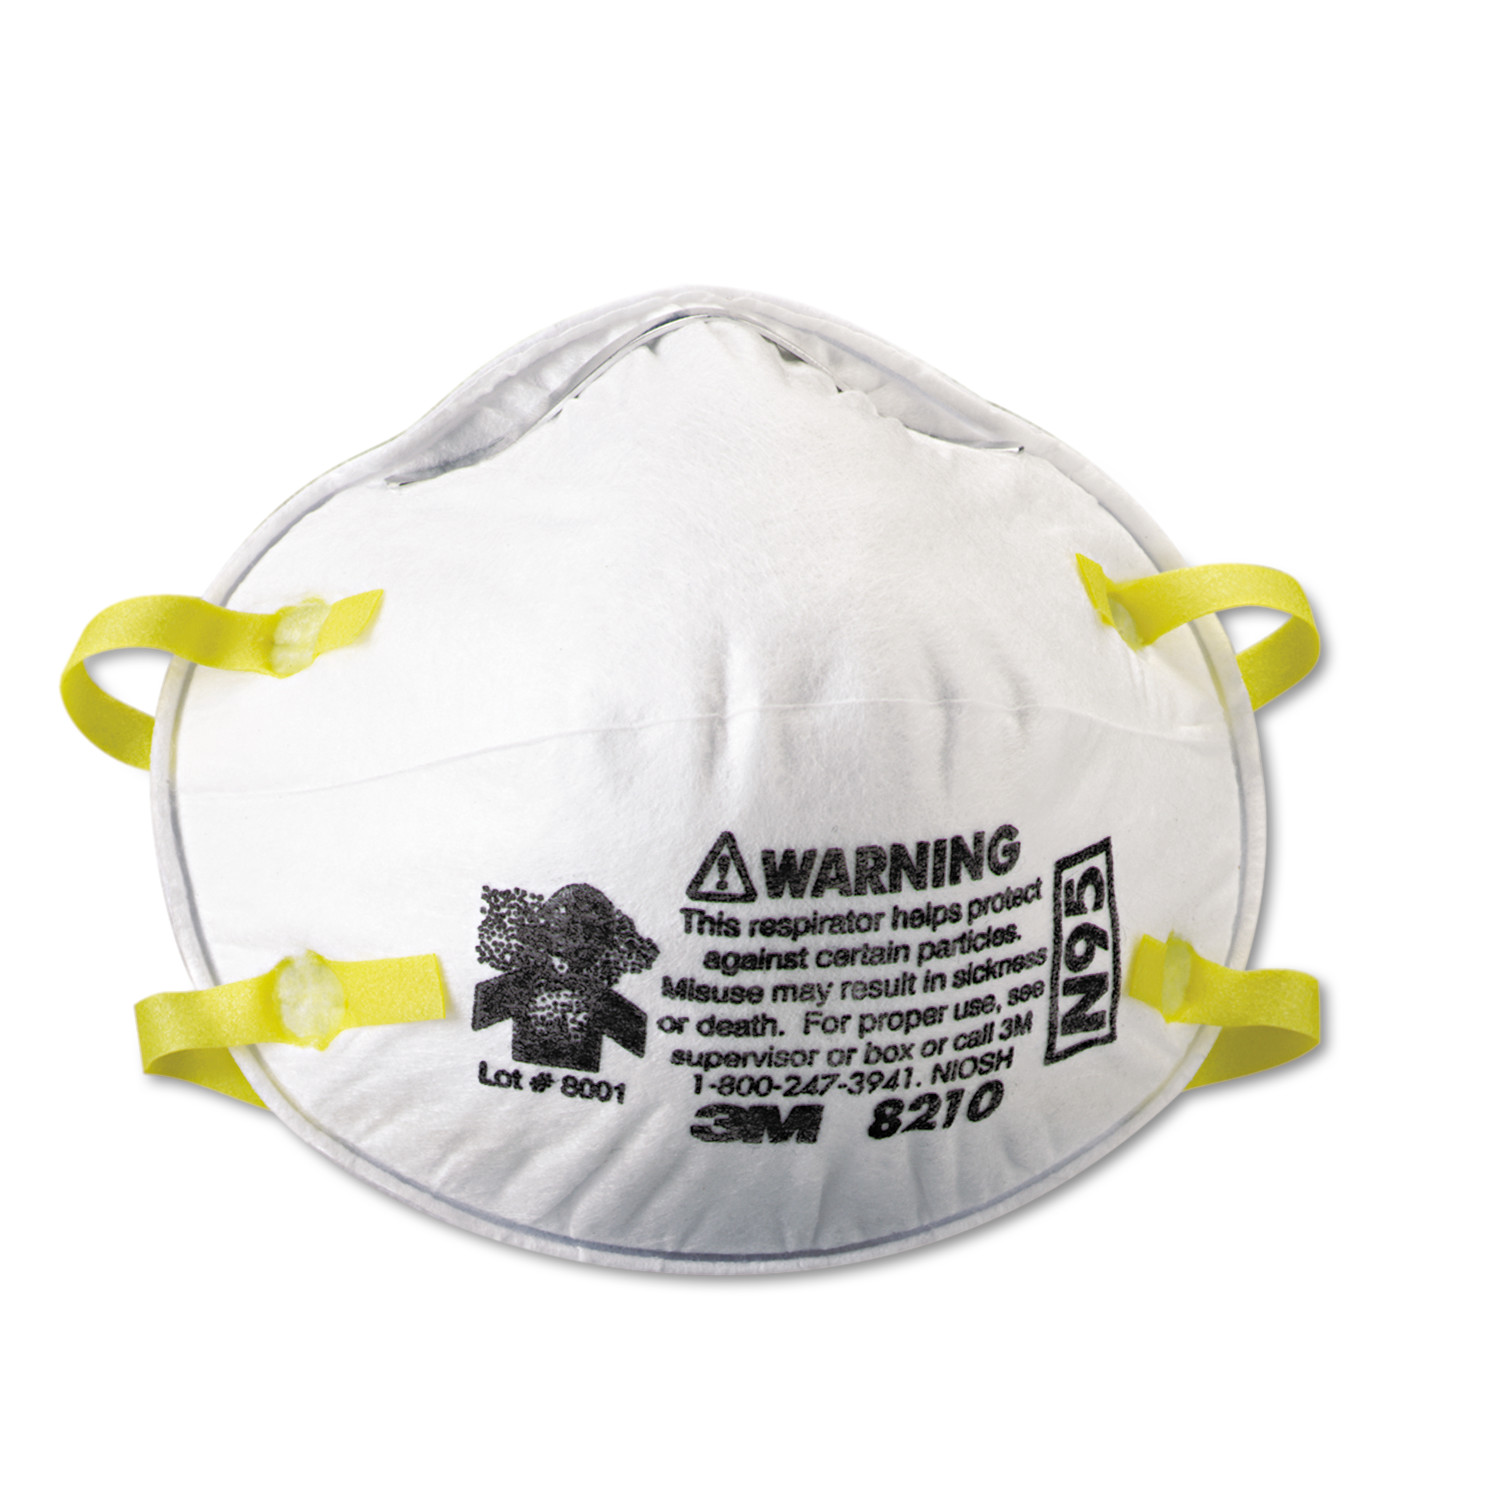 3M N95 Particulate Respirator 20 Count by 3M/COMMERCIAL TAPE DIV.